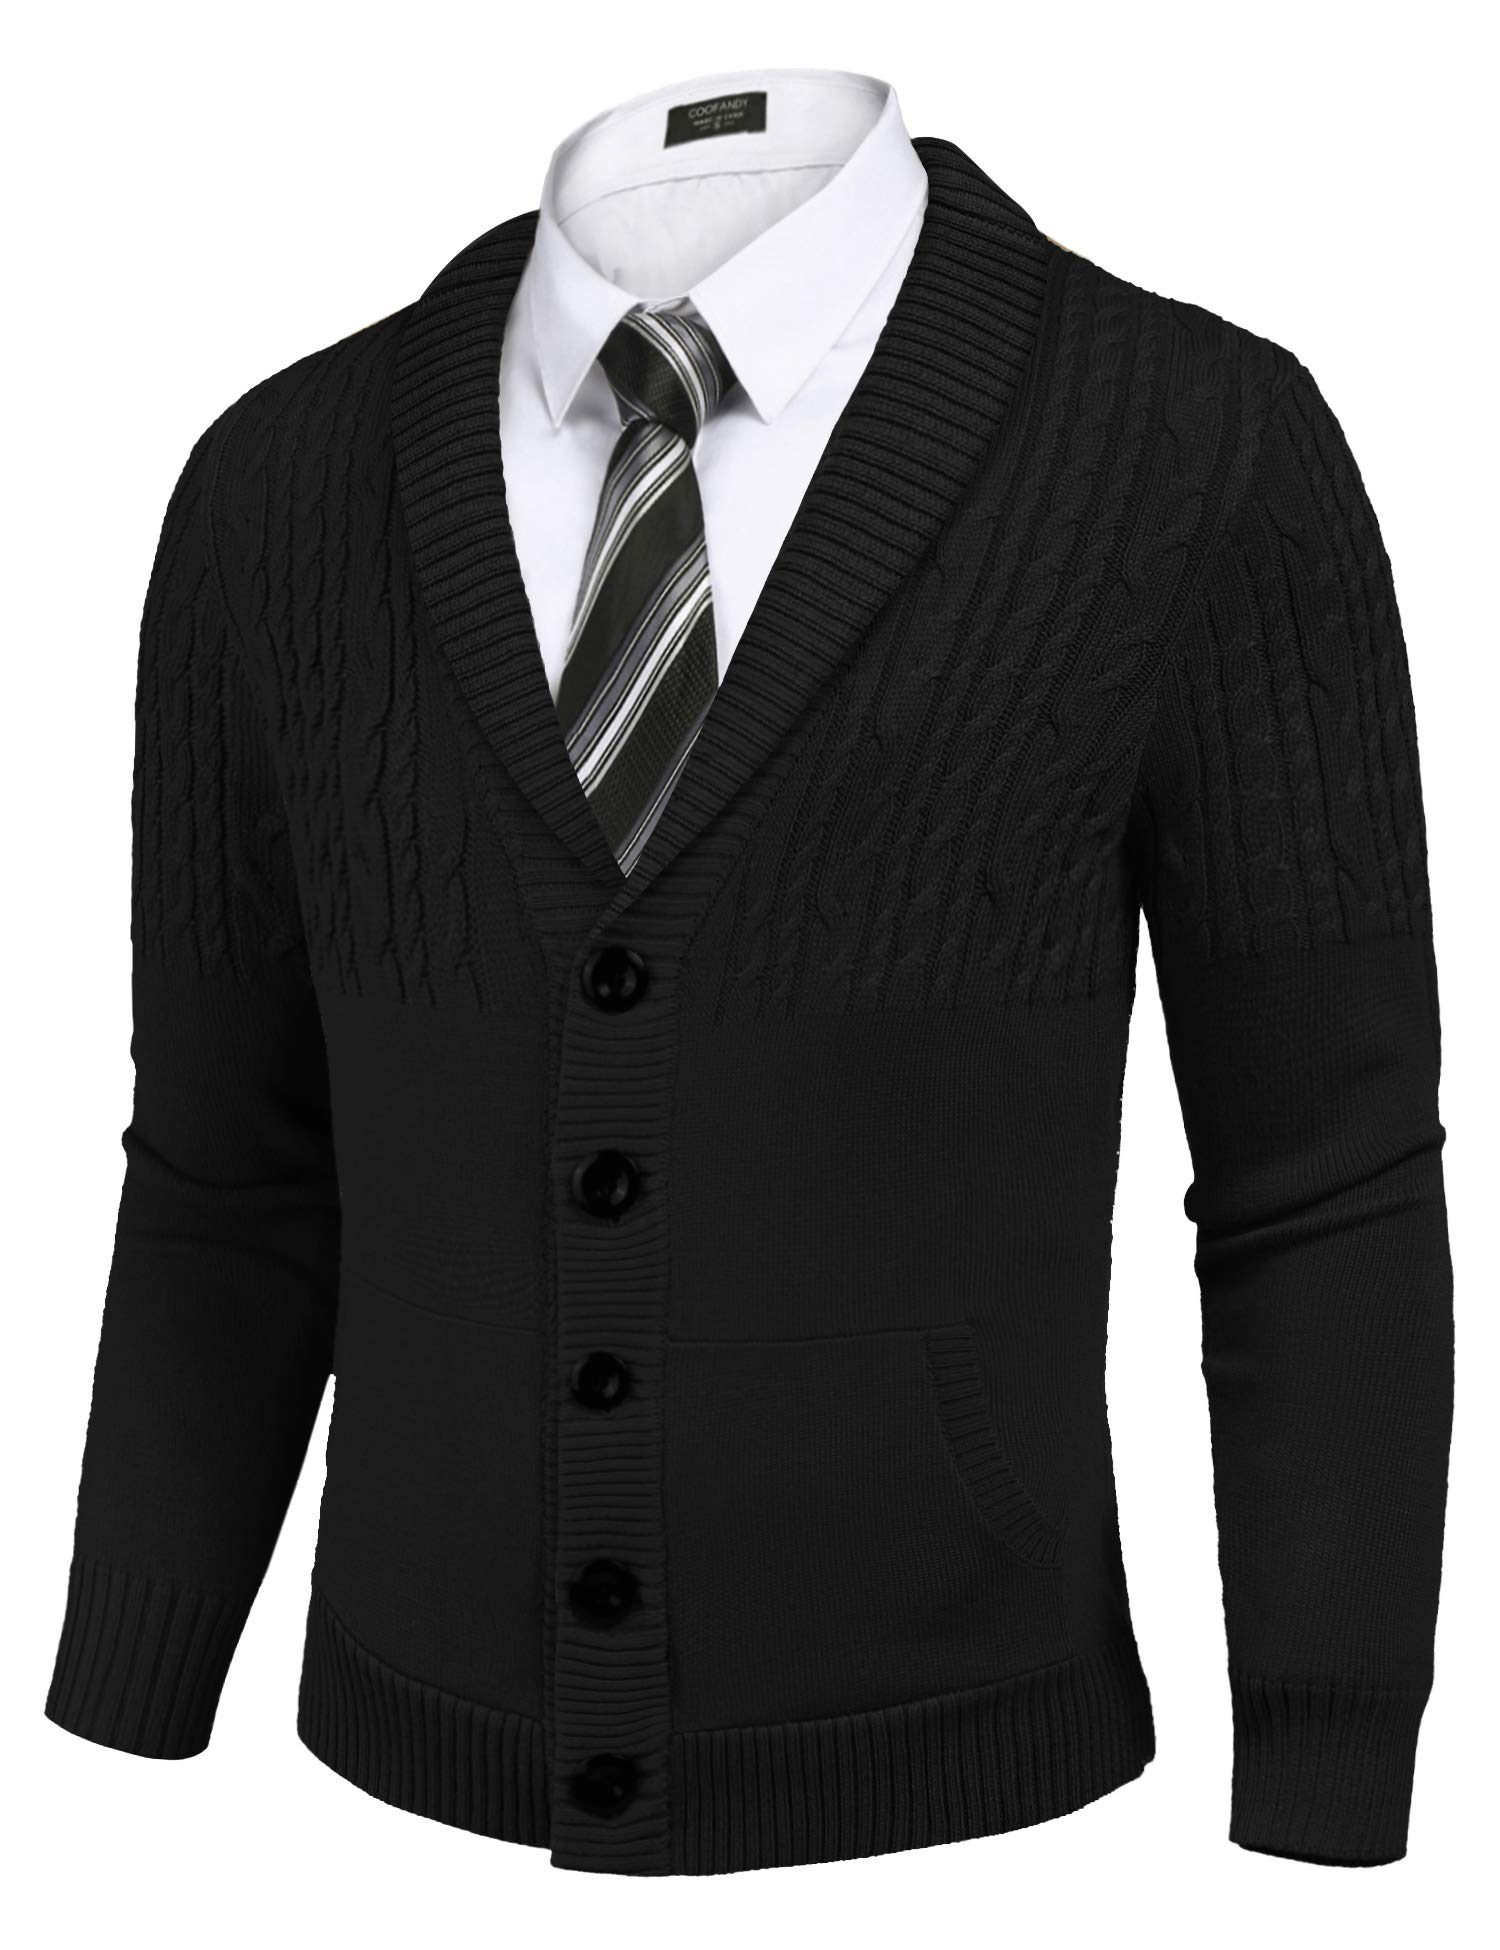 Rocorose Mens Cable Knit Cardigan Sweater Long Sleeves Contrast Color